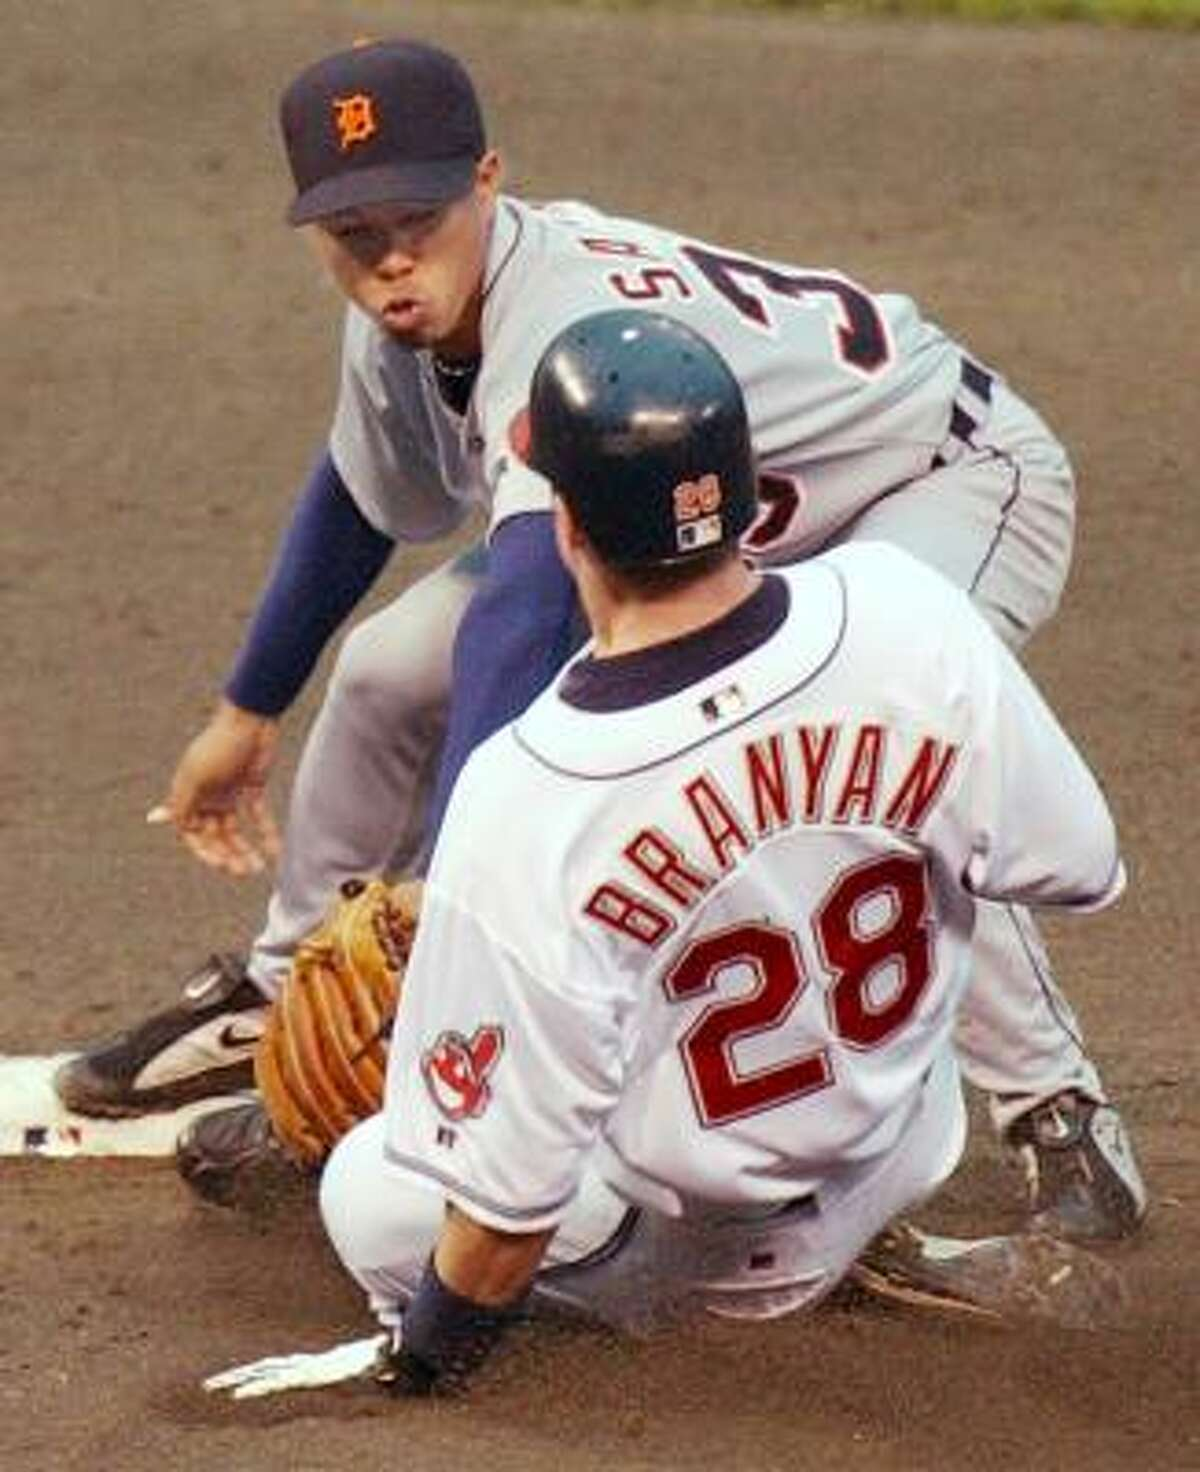 2007: Russell Branyan (From Cleveland to Philadelphia)